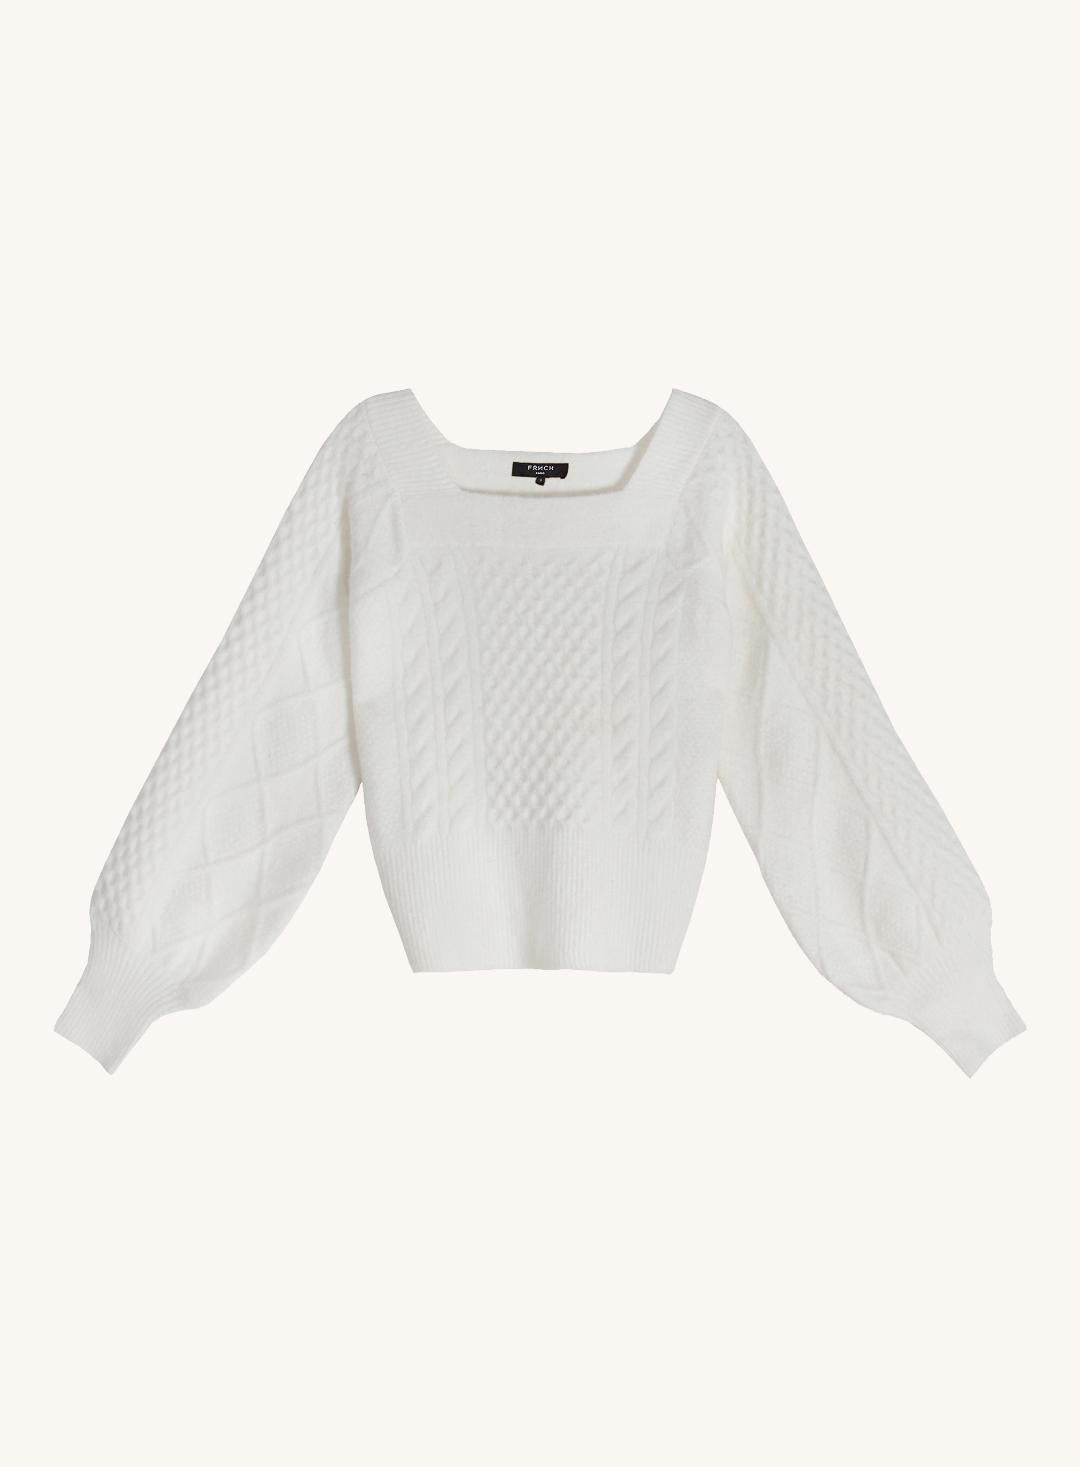 Noalig Sweater in White